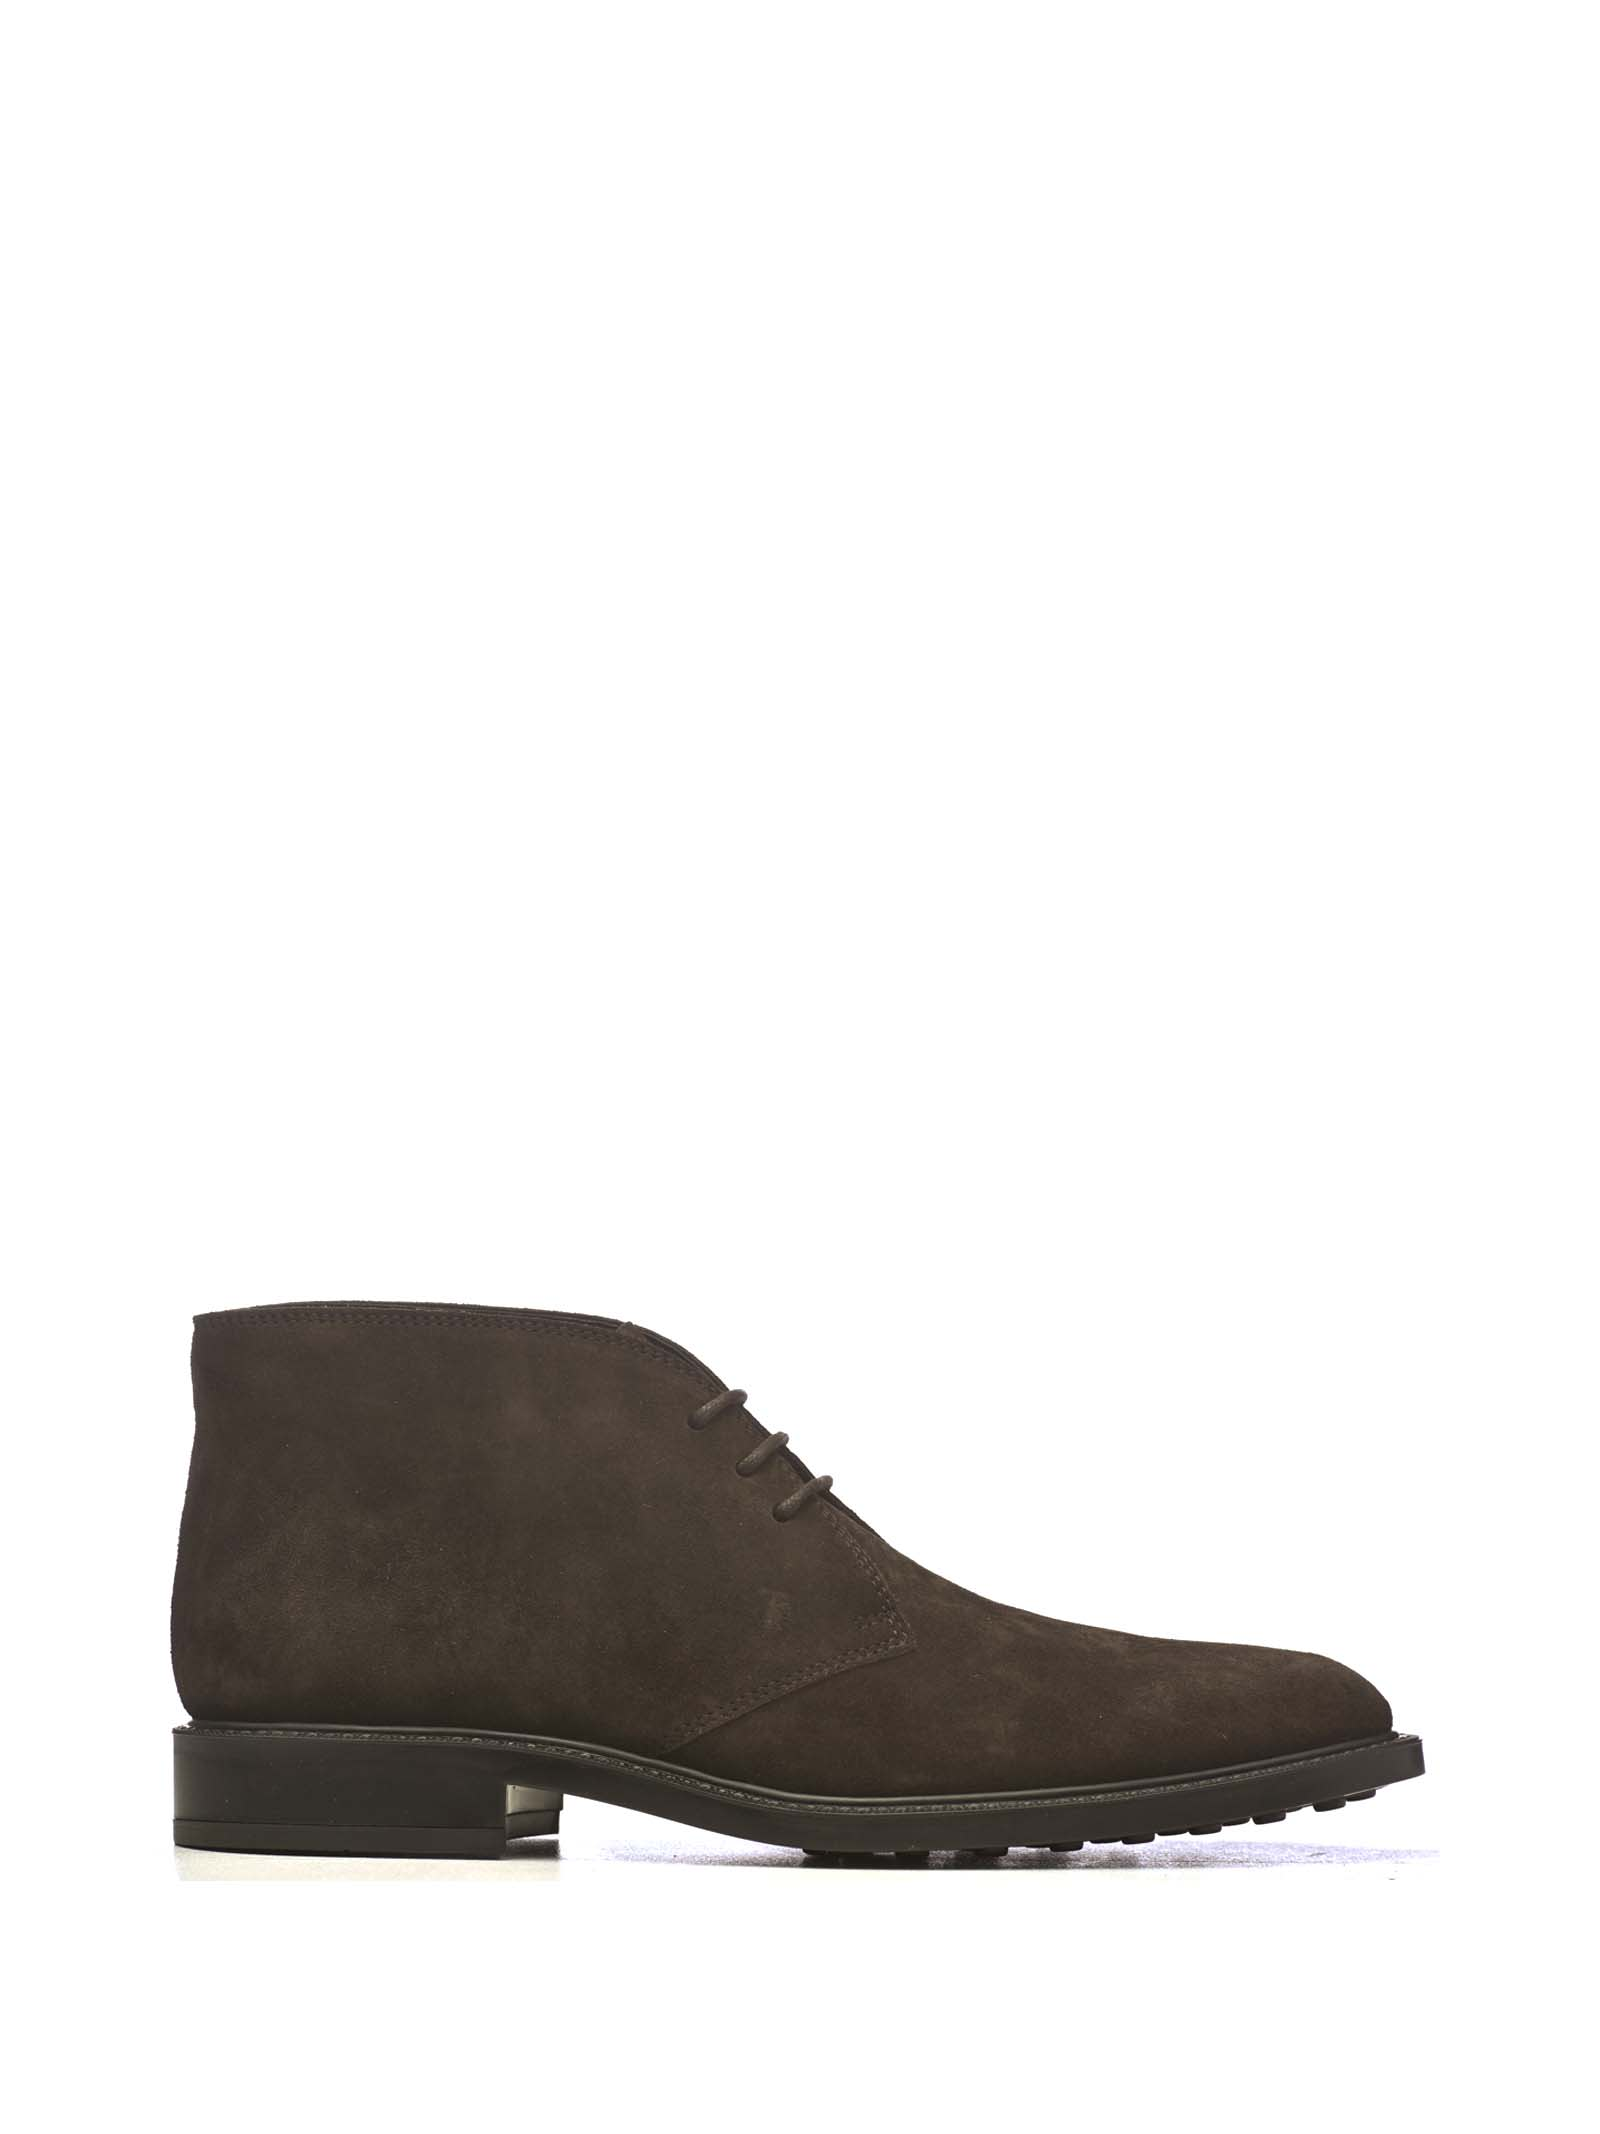 Tods Tods Oxford Suede Boots